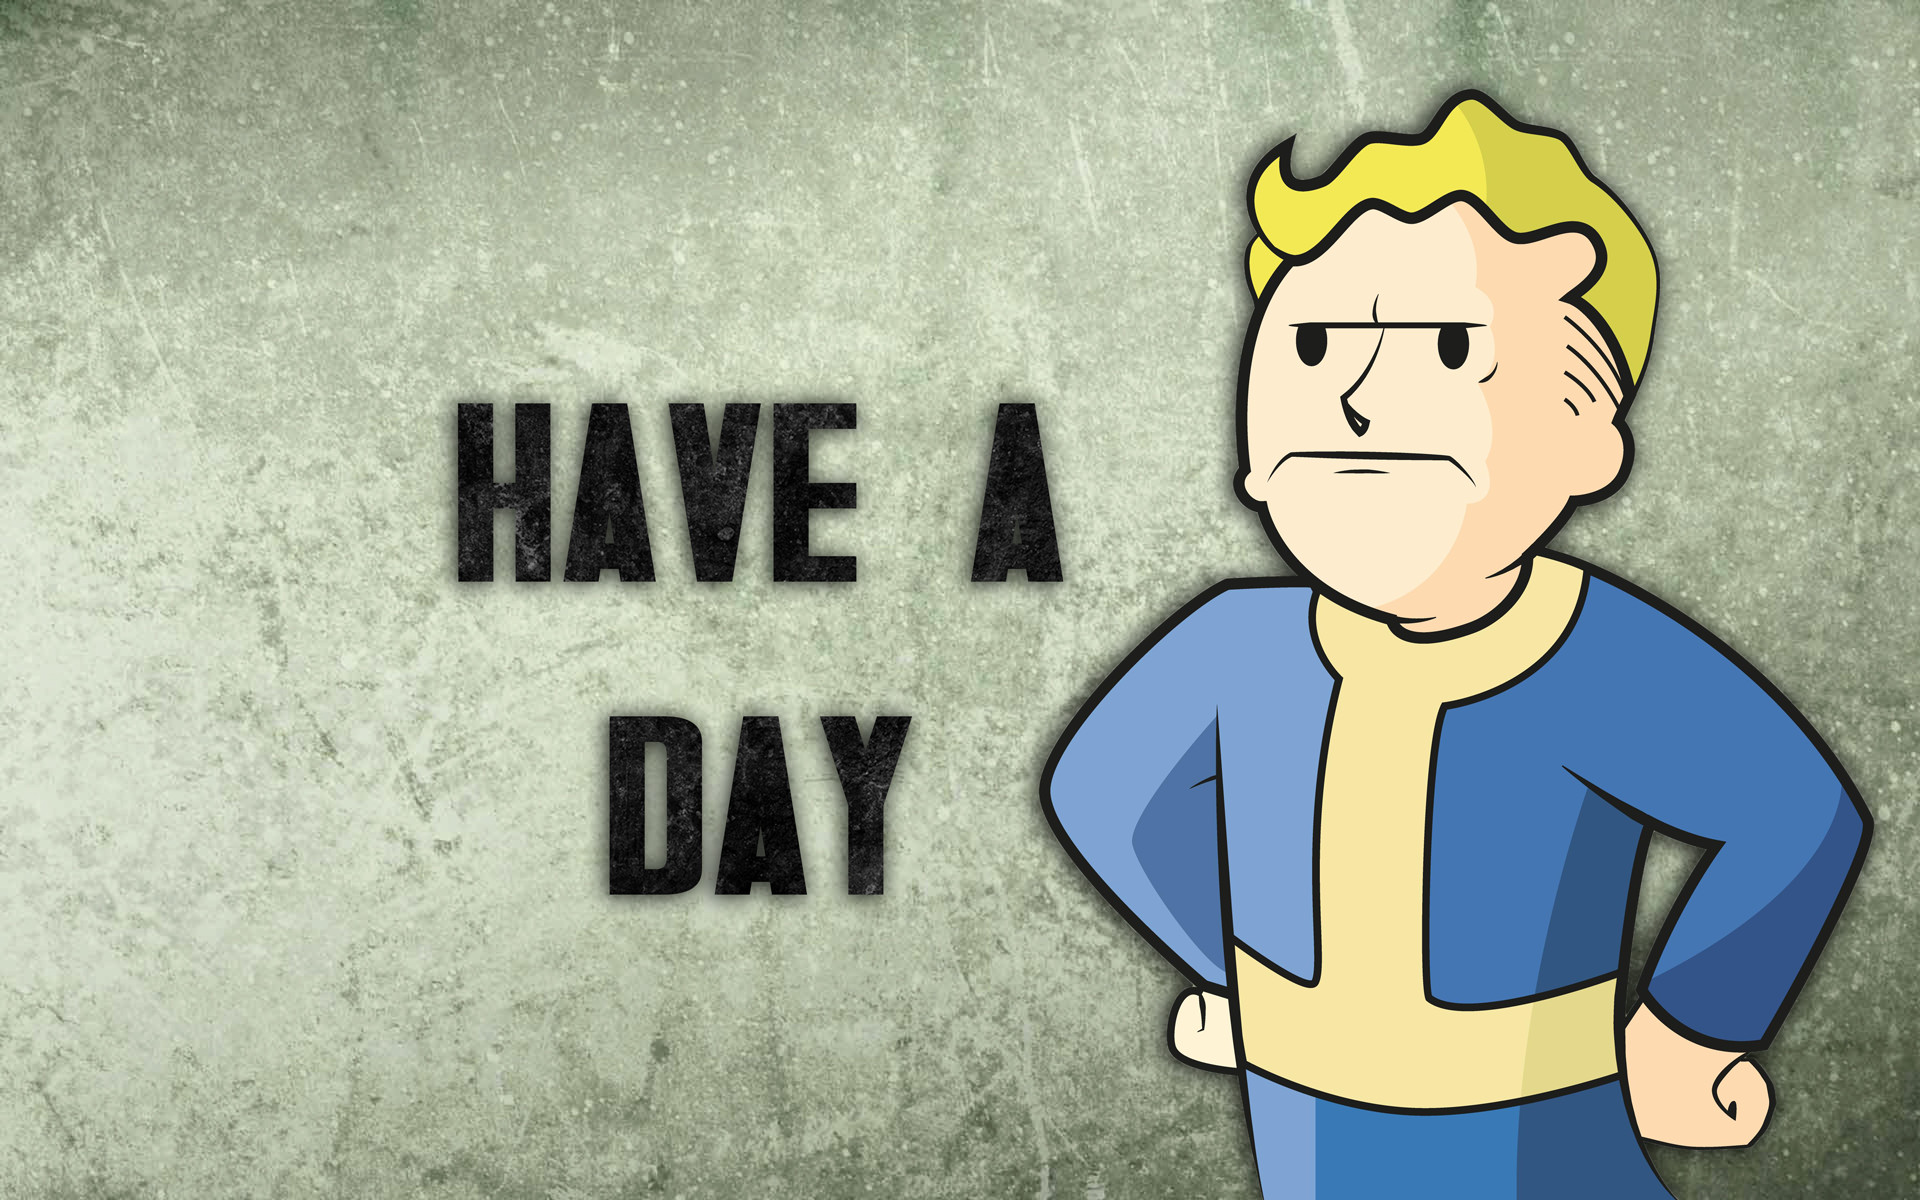 Fallout Vault Boy: Have a day Wallpaper